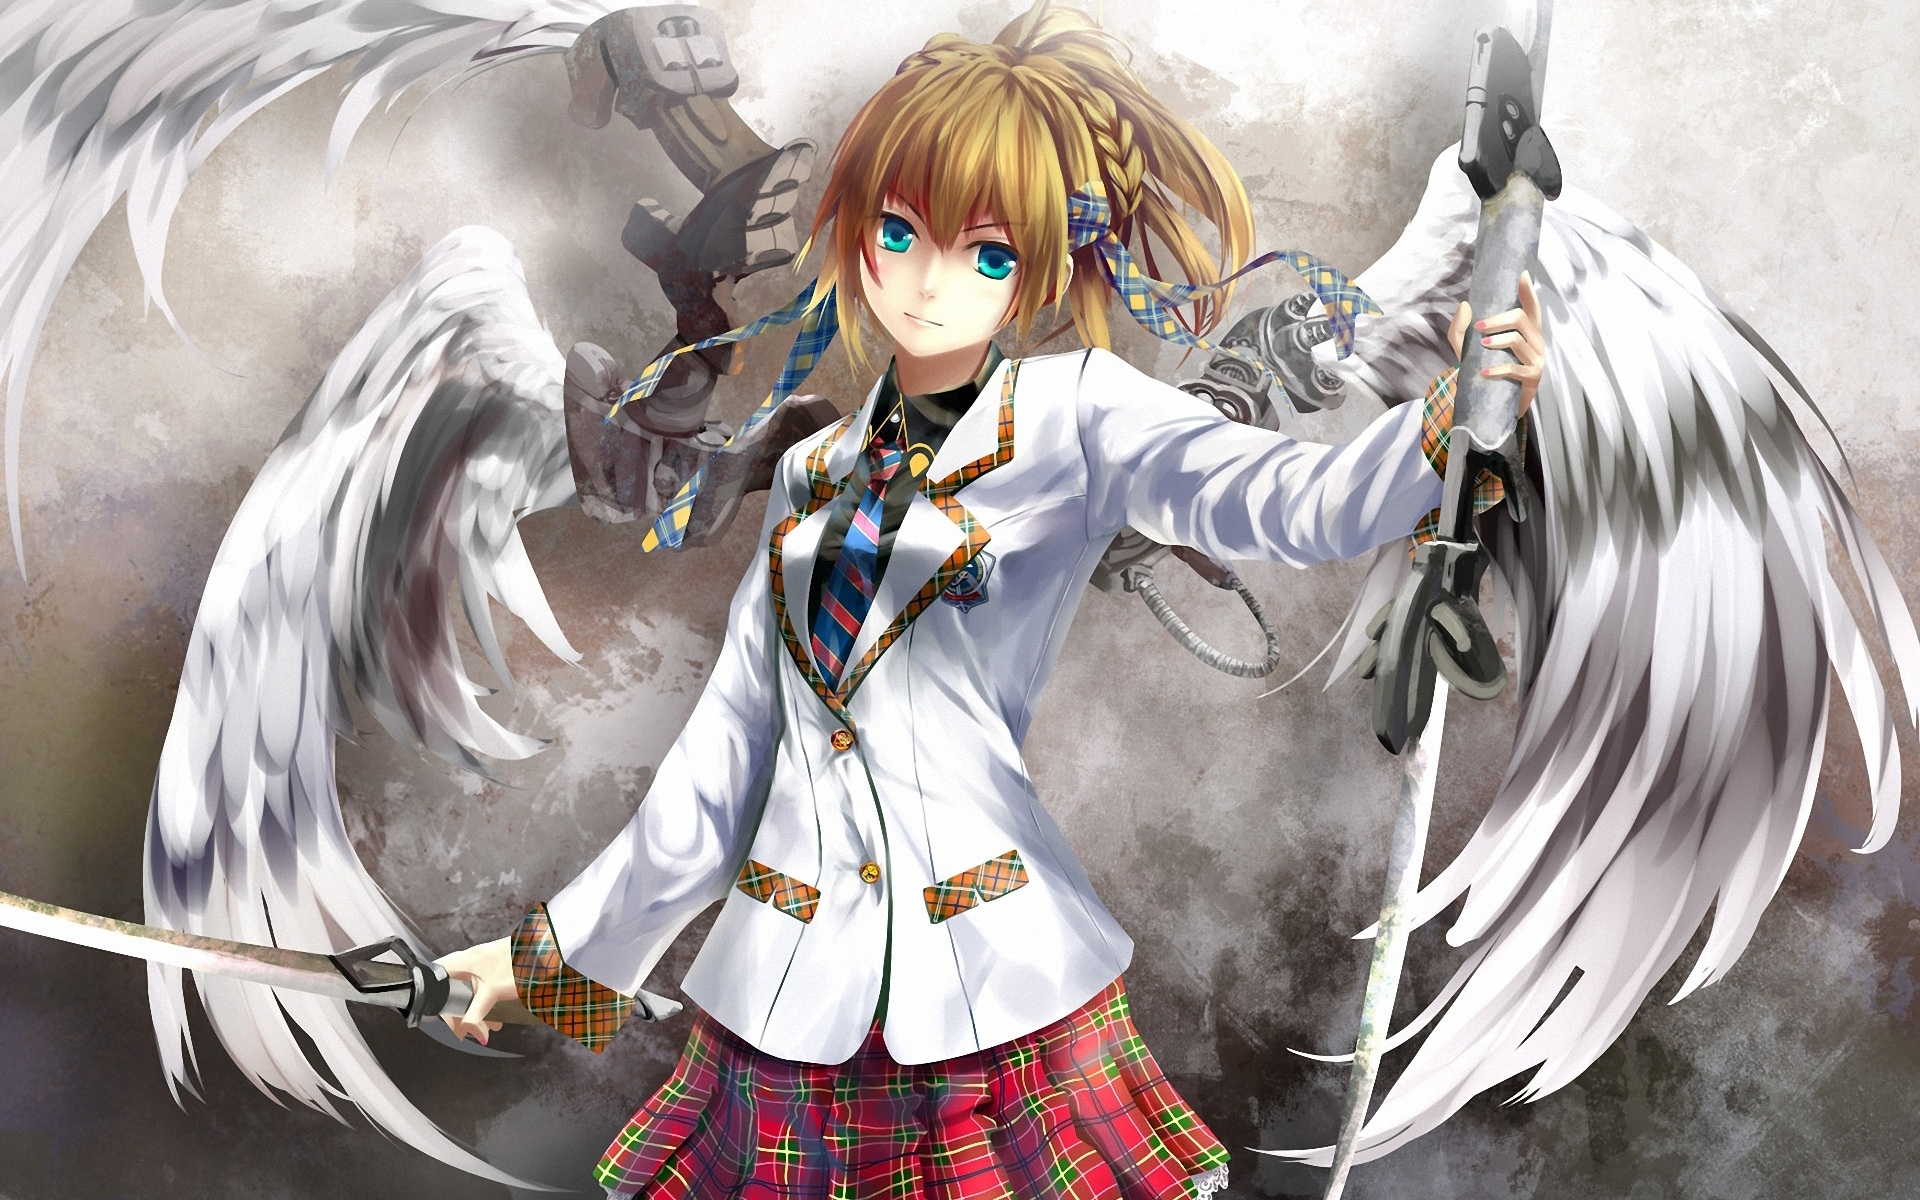 Wallpaper anime angel girl with a sword as a weapon - Anime girl with weapon ...